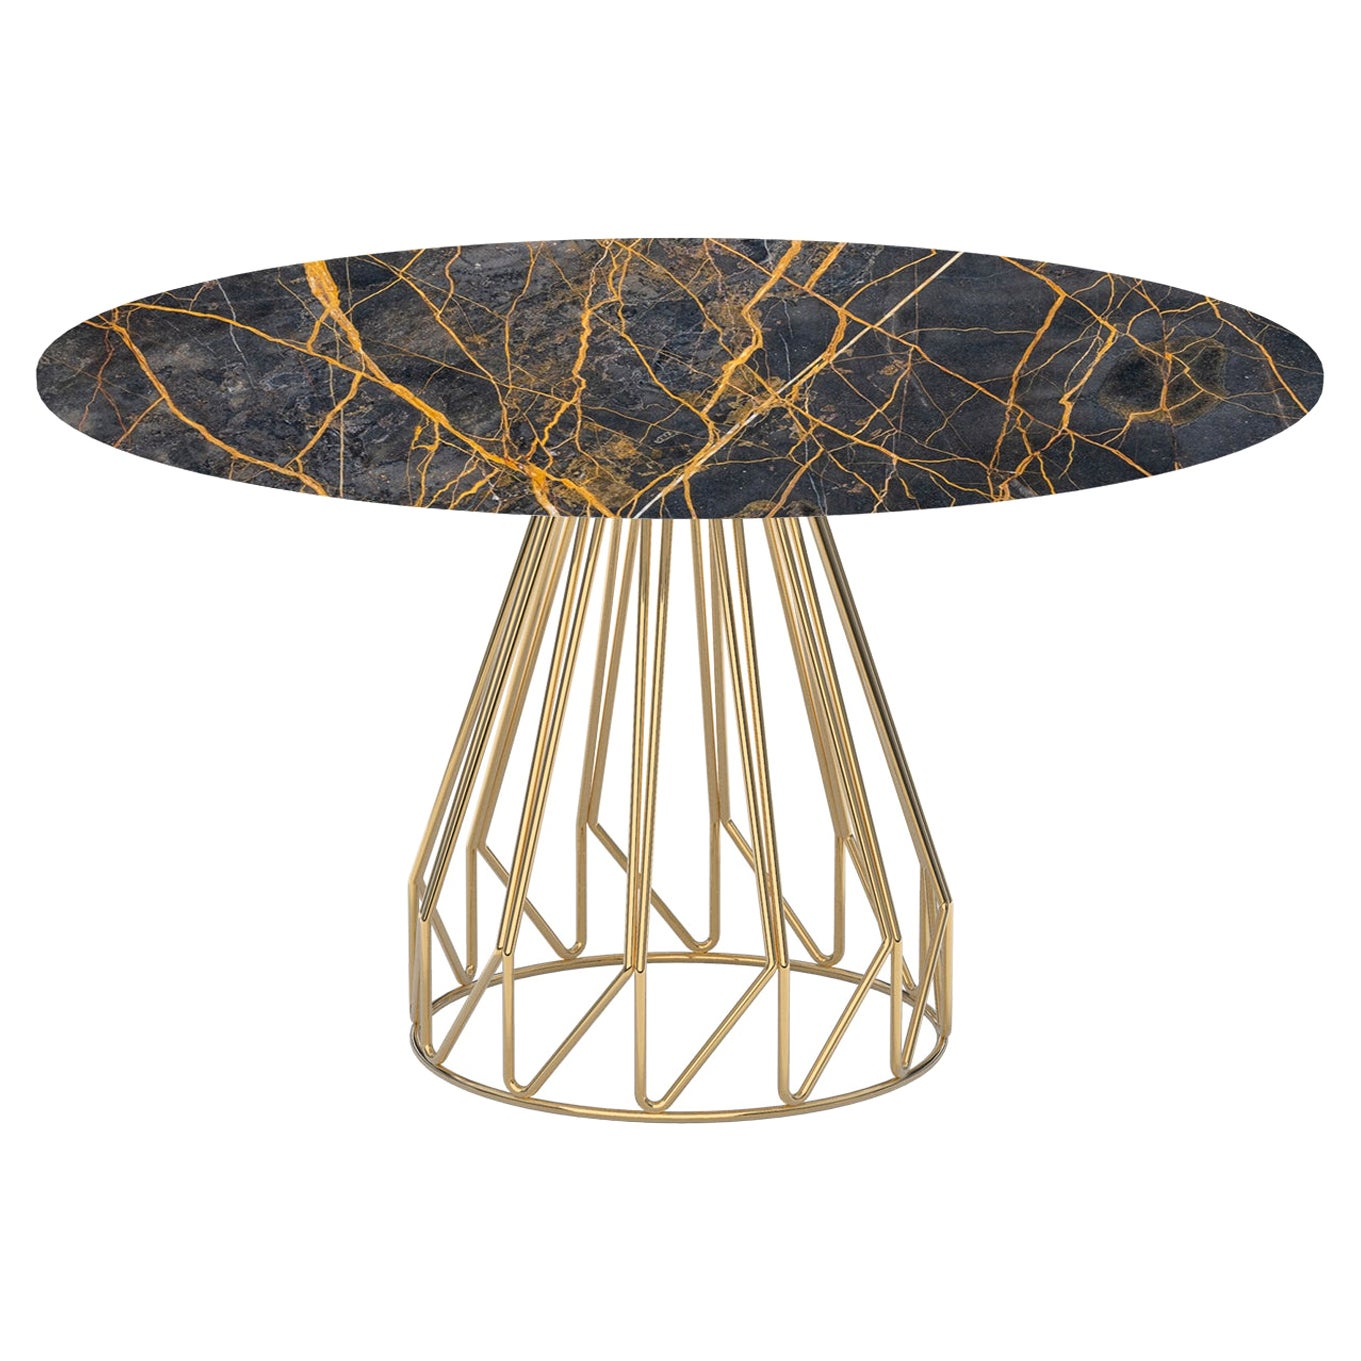 Contemporary Minimalist Table Gold, Port Laurent Made in Italy by LapiegaWD